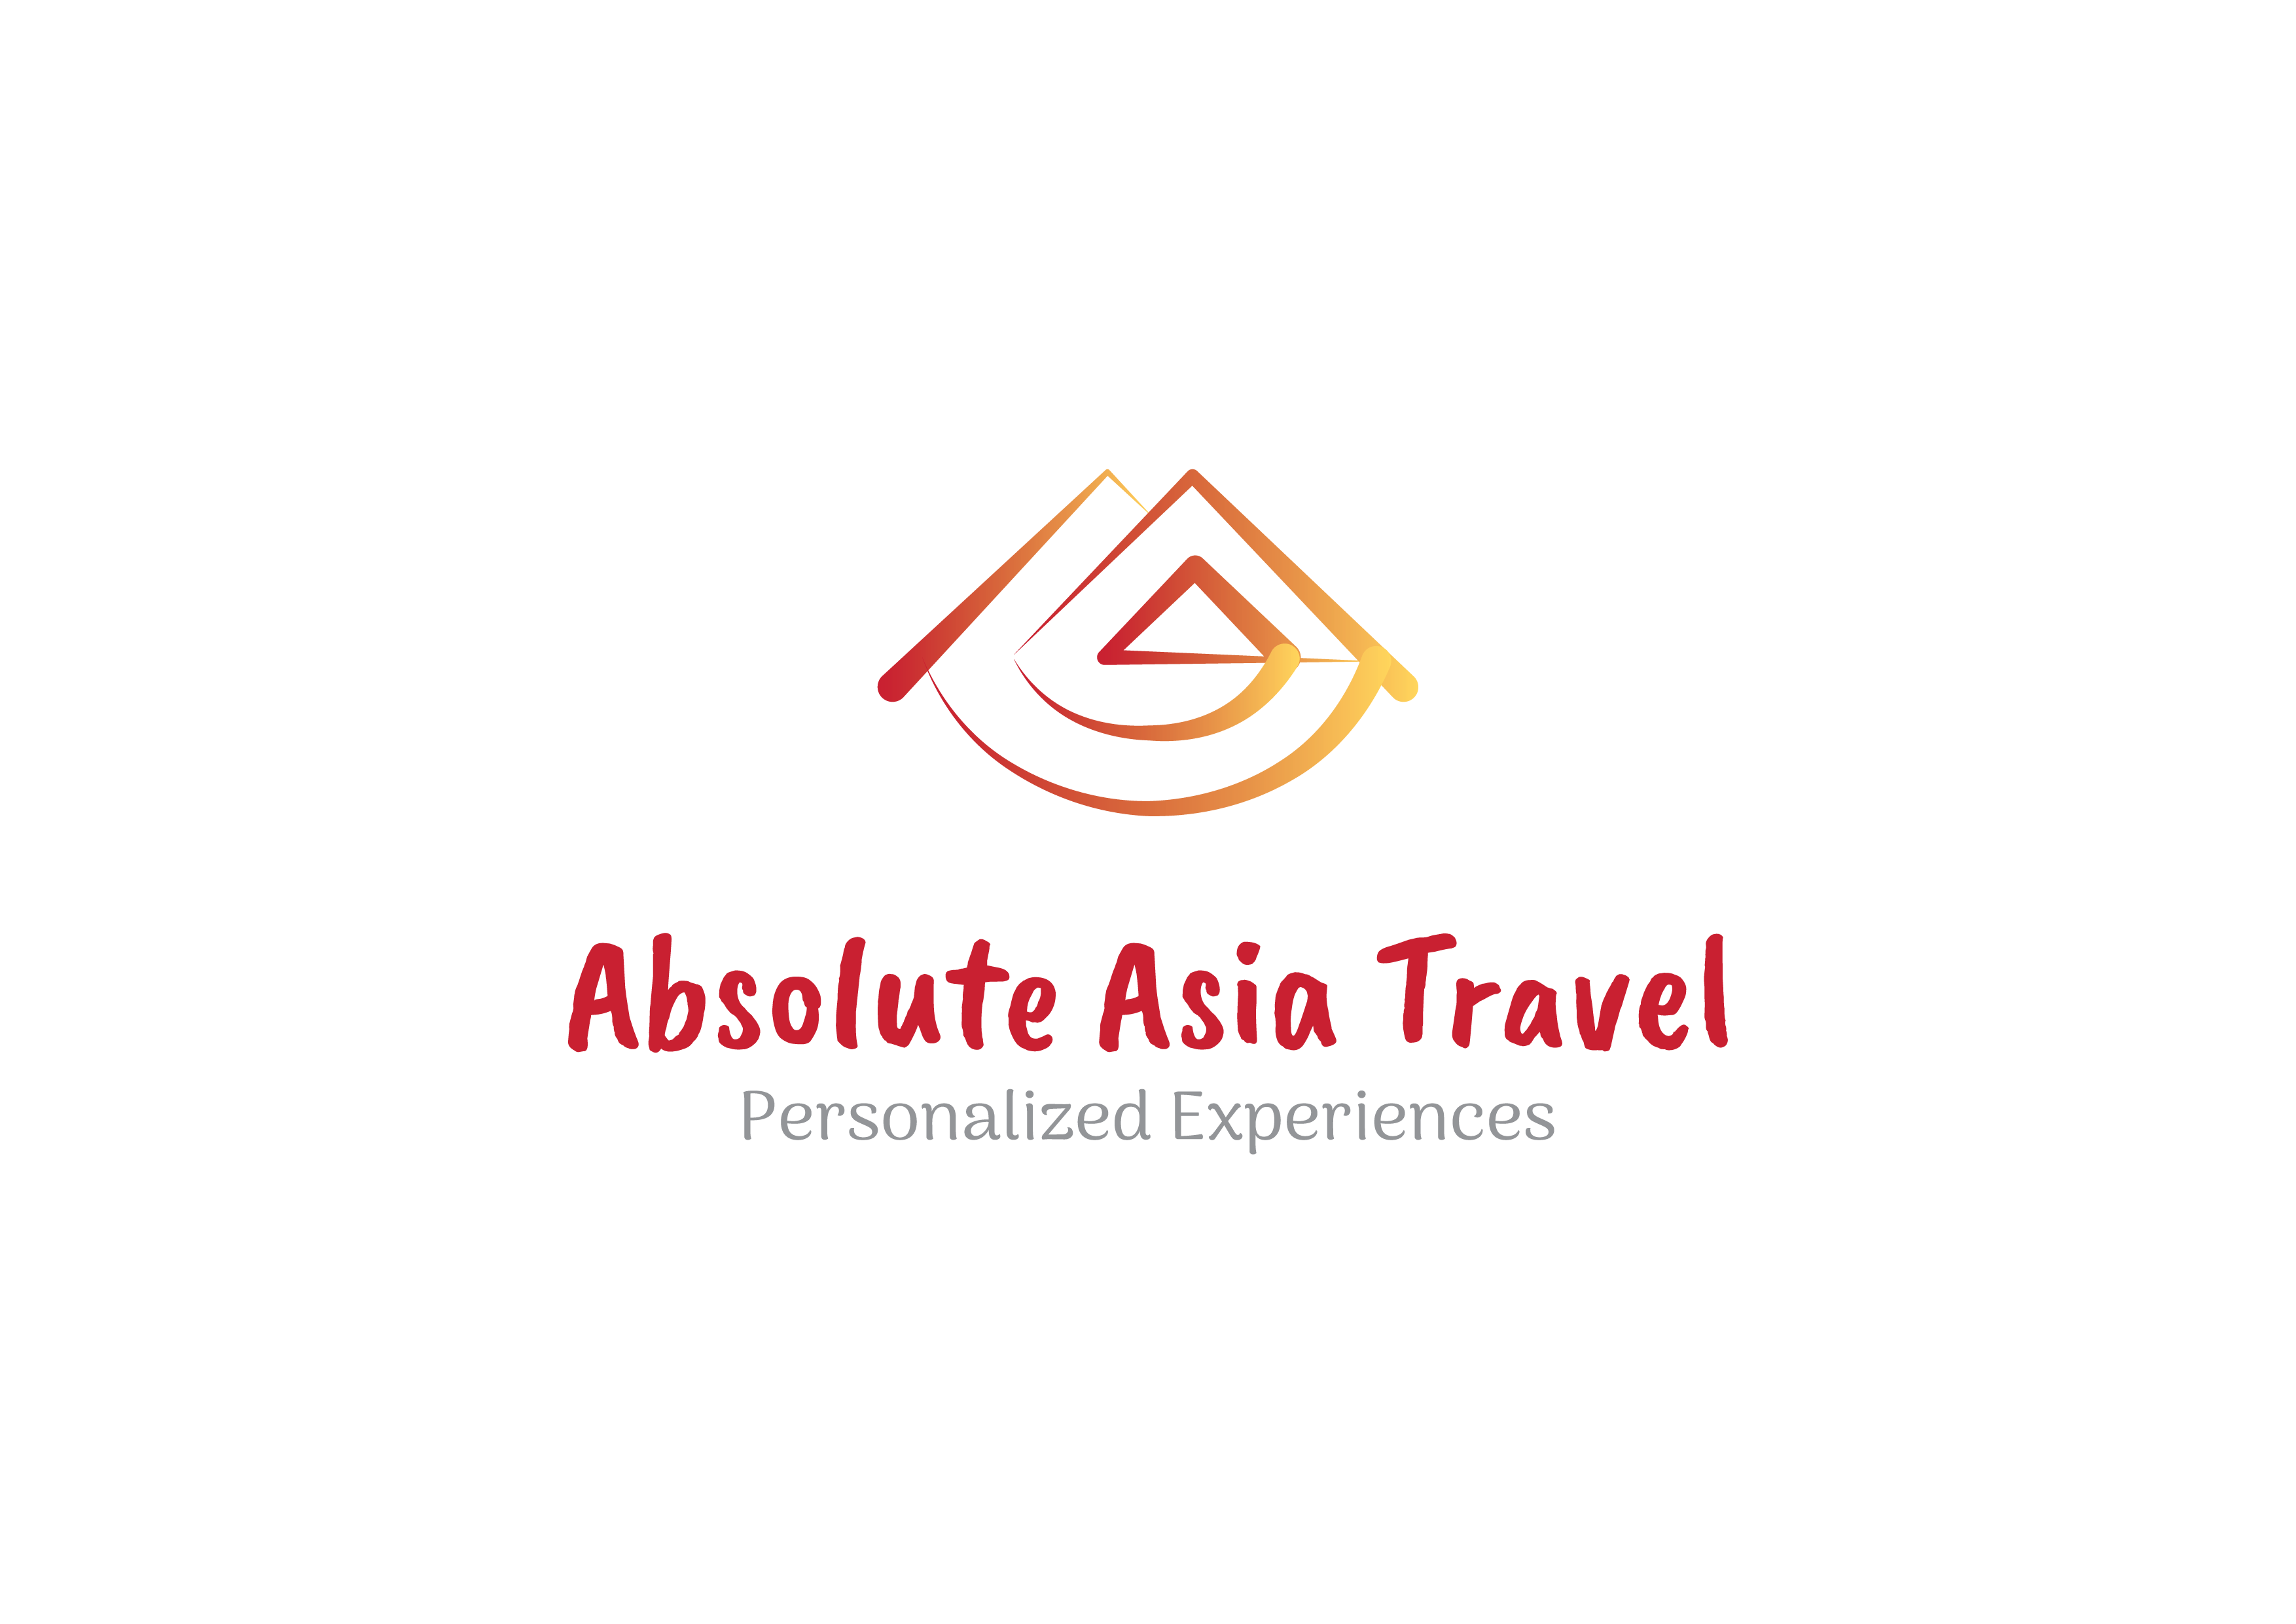 Công ty CP Du lịch Absolute Asia